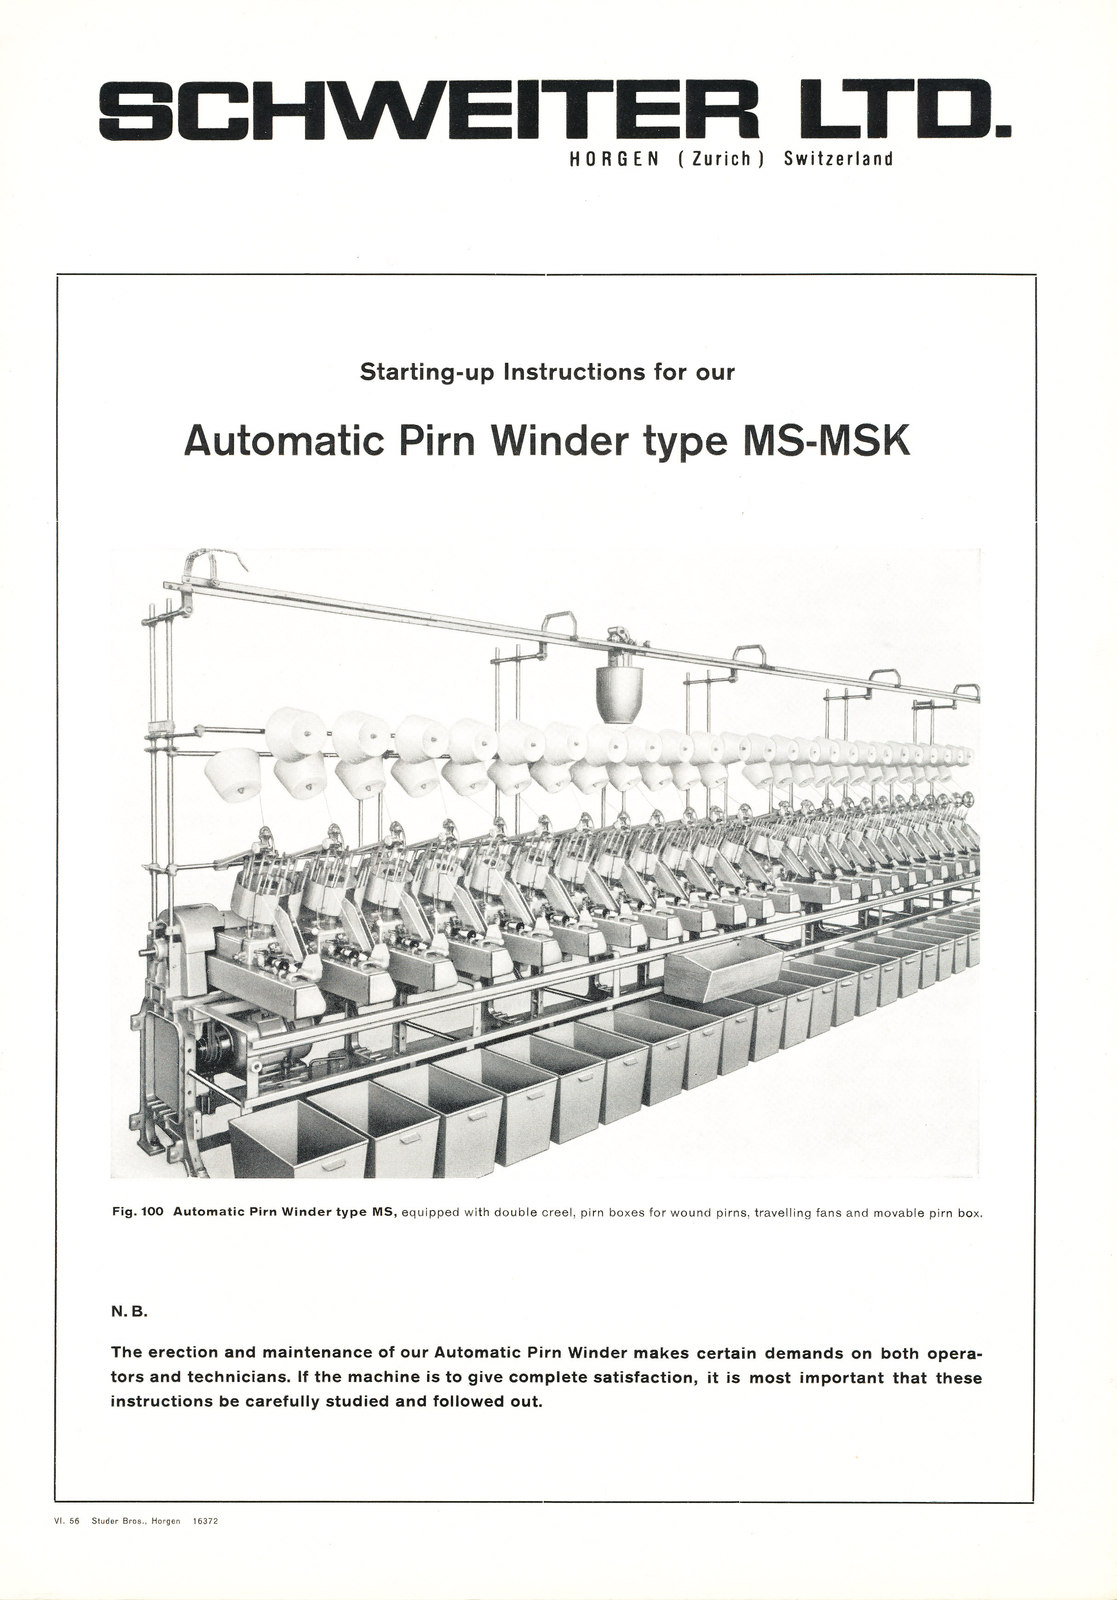 Automatic pirn winder instruction booklet in Jute